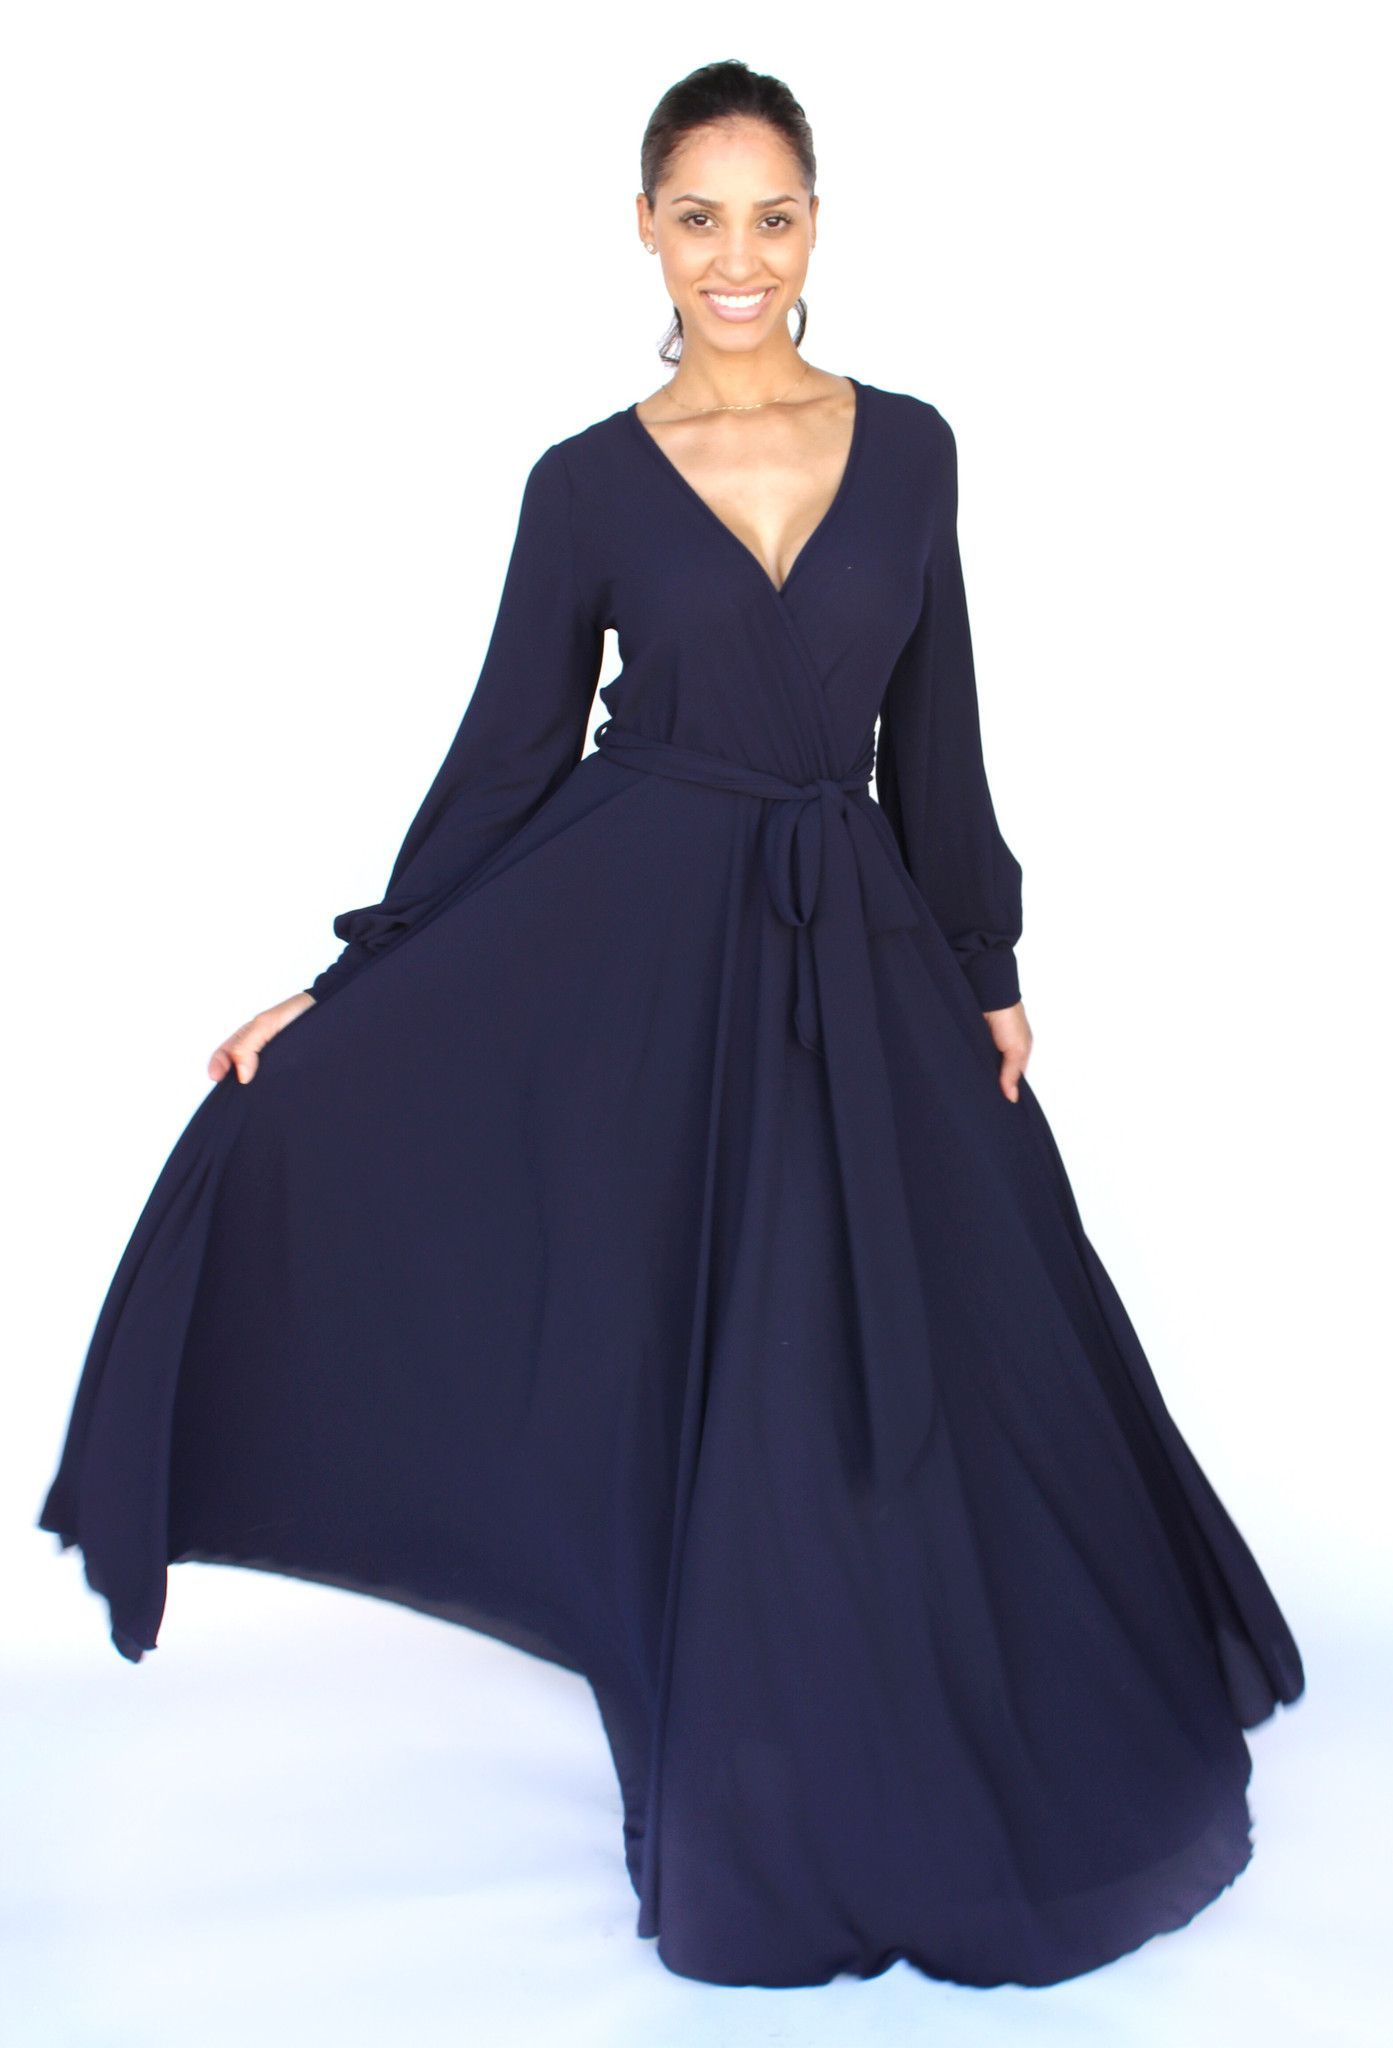 This gorgeous dress is perfect in every way button closures at